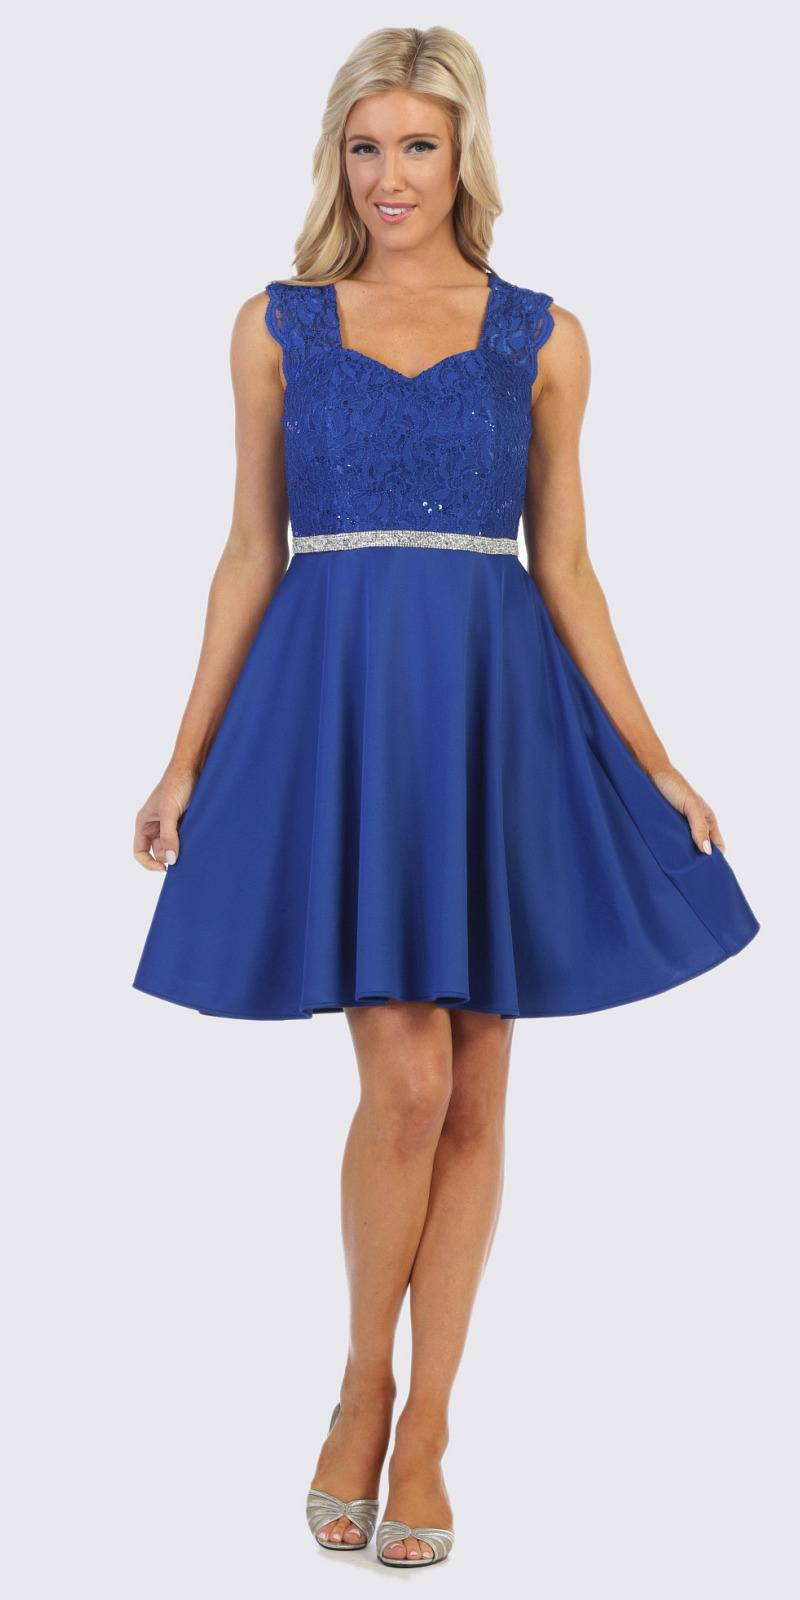 09a45f89c8c Royal Blue Short Cocktail Dress with Queen Anne Neckline. Tap to expand